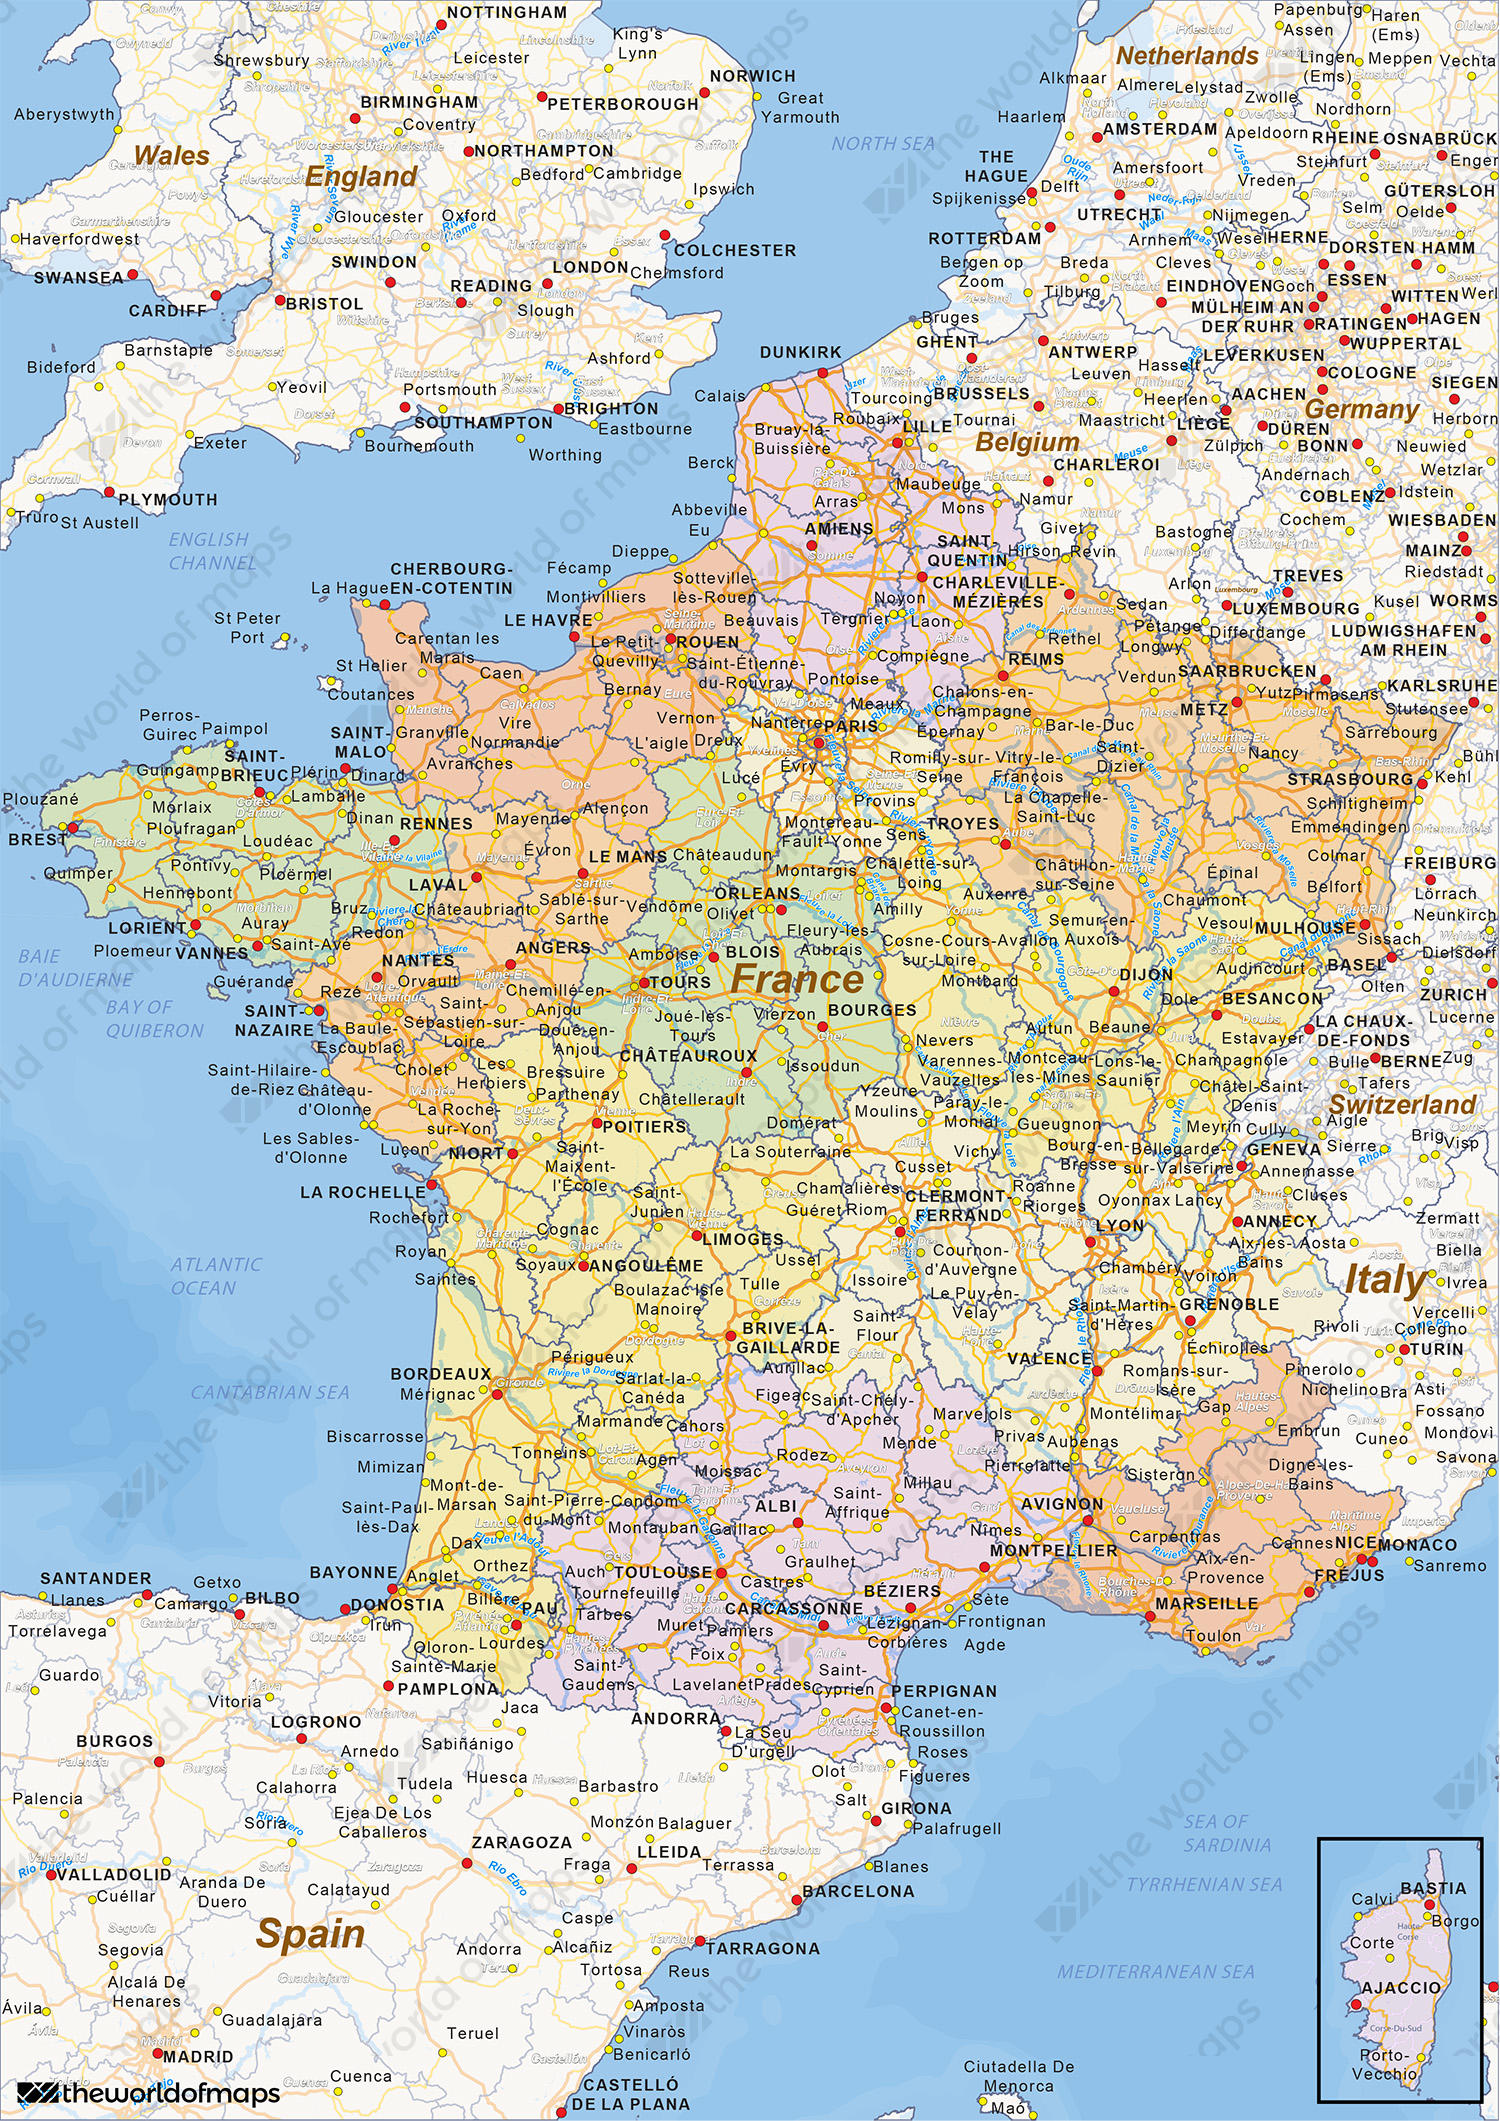 Digital political map of France 1434 The World of Mapscom